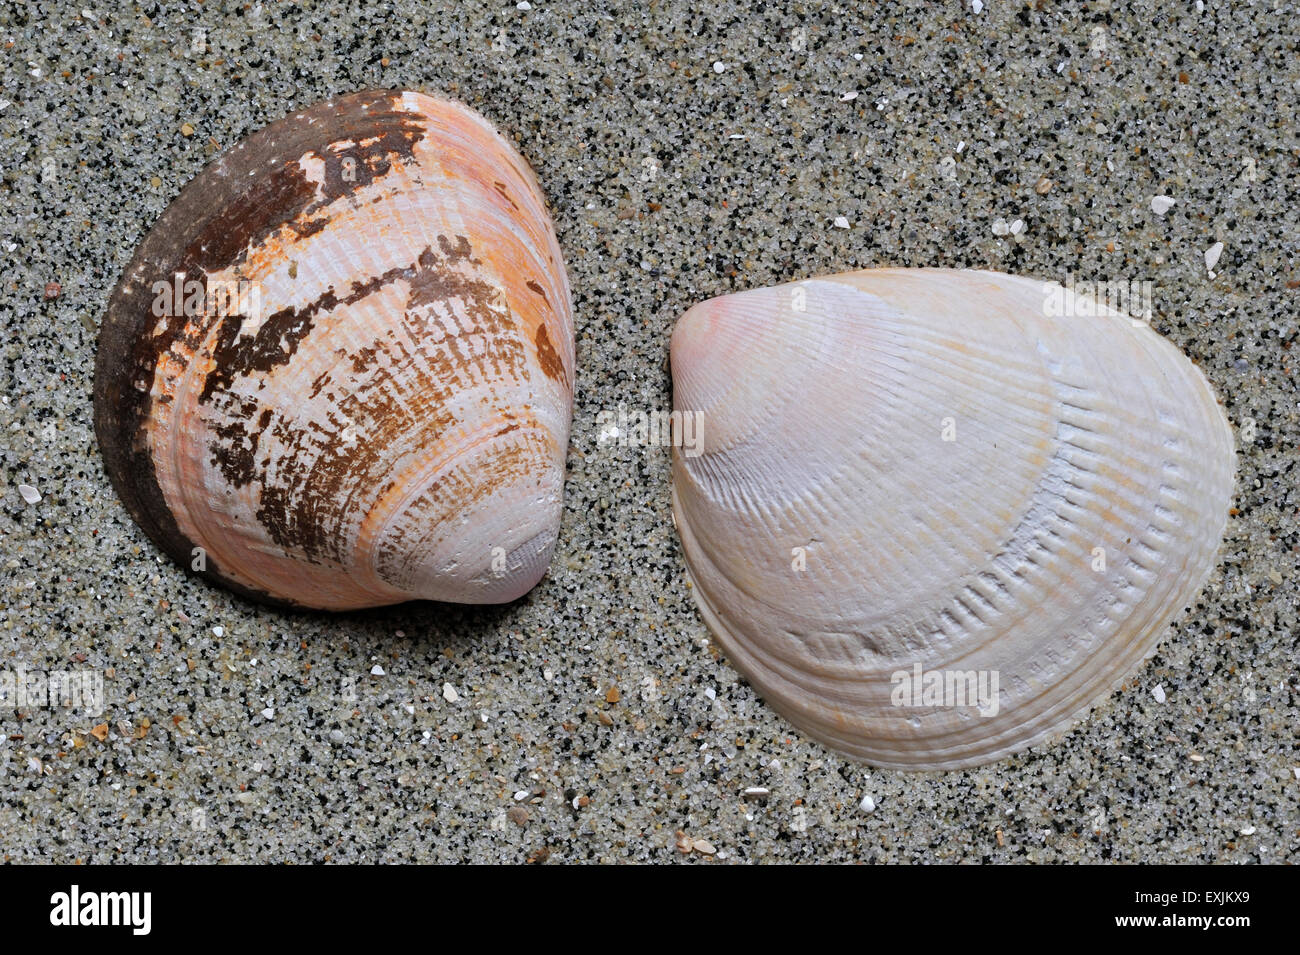 cockles pictures cockles cockle shells cardiidae stock photos cockles 6092